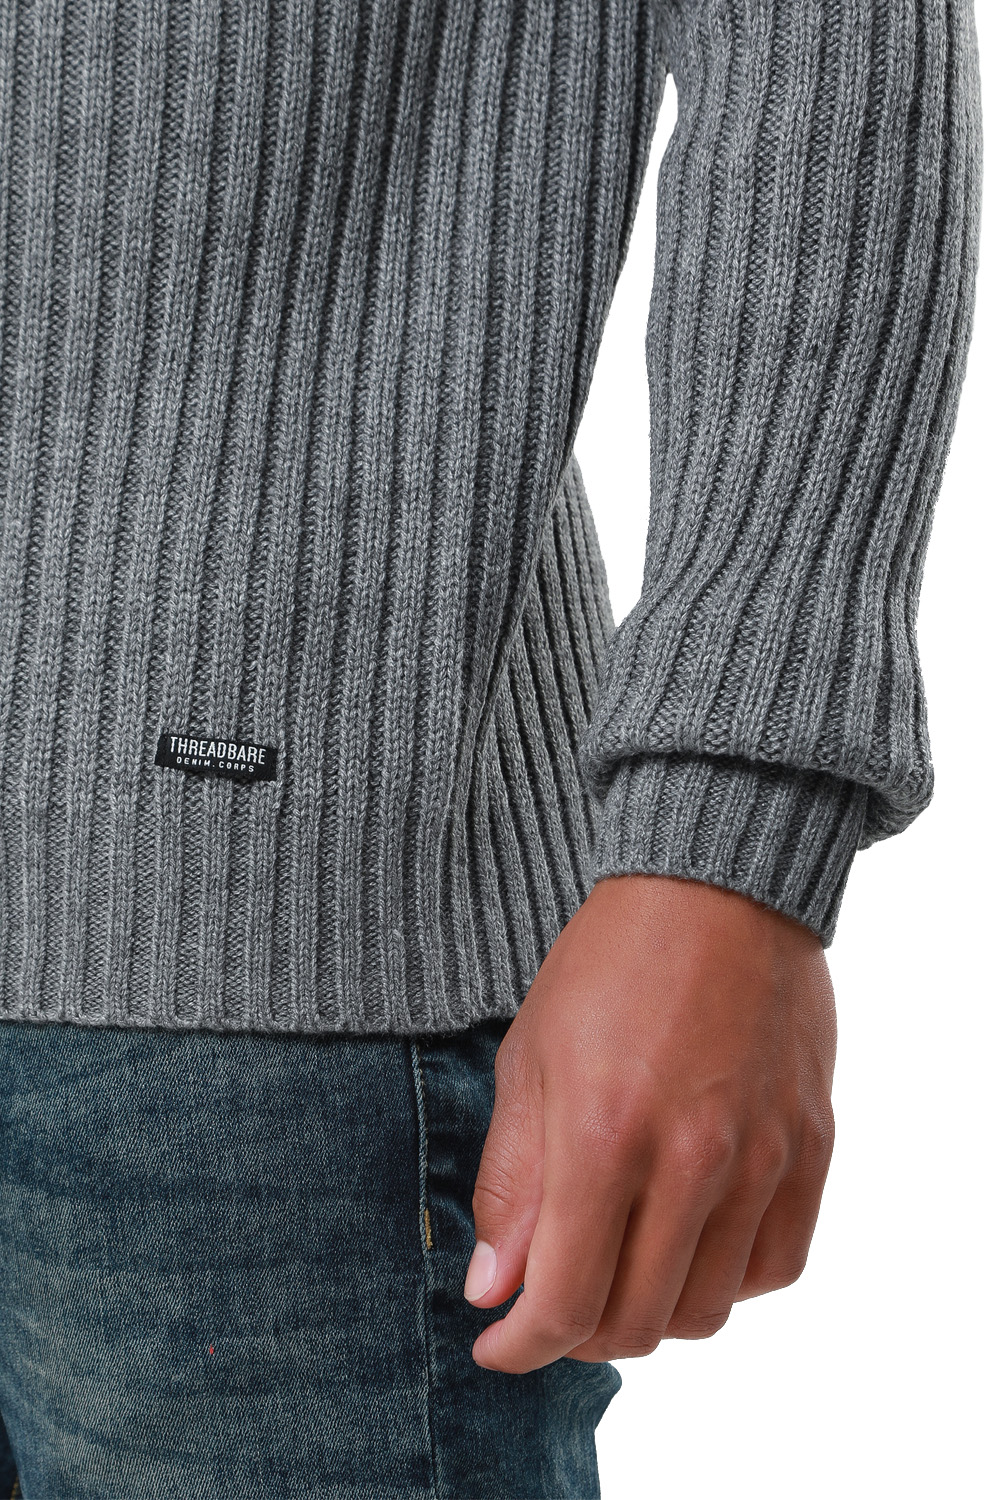 Threadbare-Mens-Saltbush-Jumper-Crew-Neck-Chunky-Cable-Knit-Wool-Blend-Sweater thumbnail 10